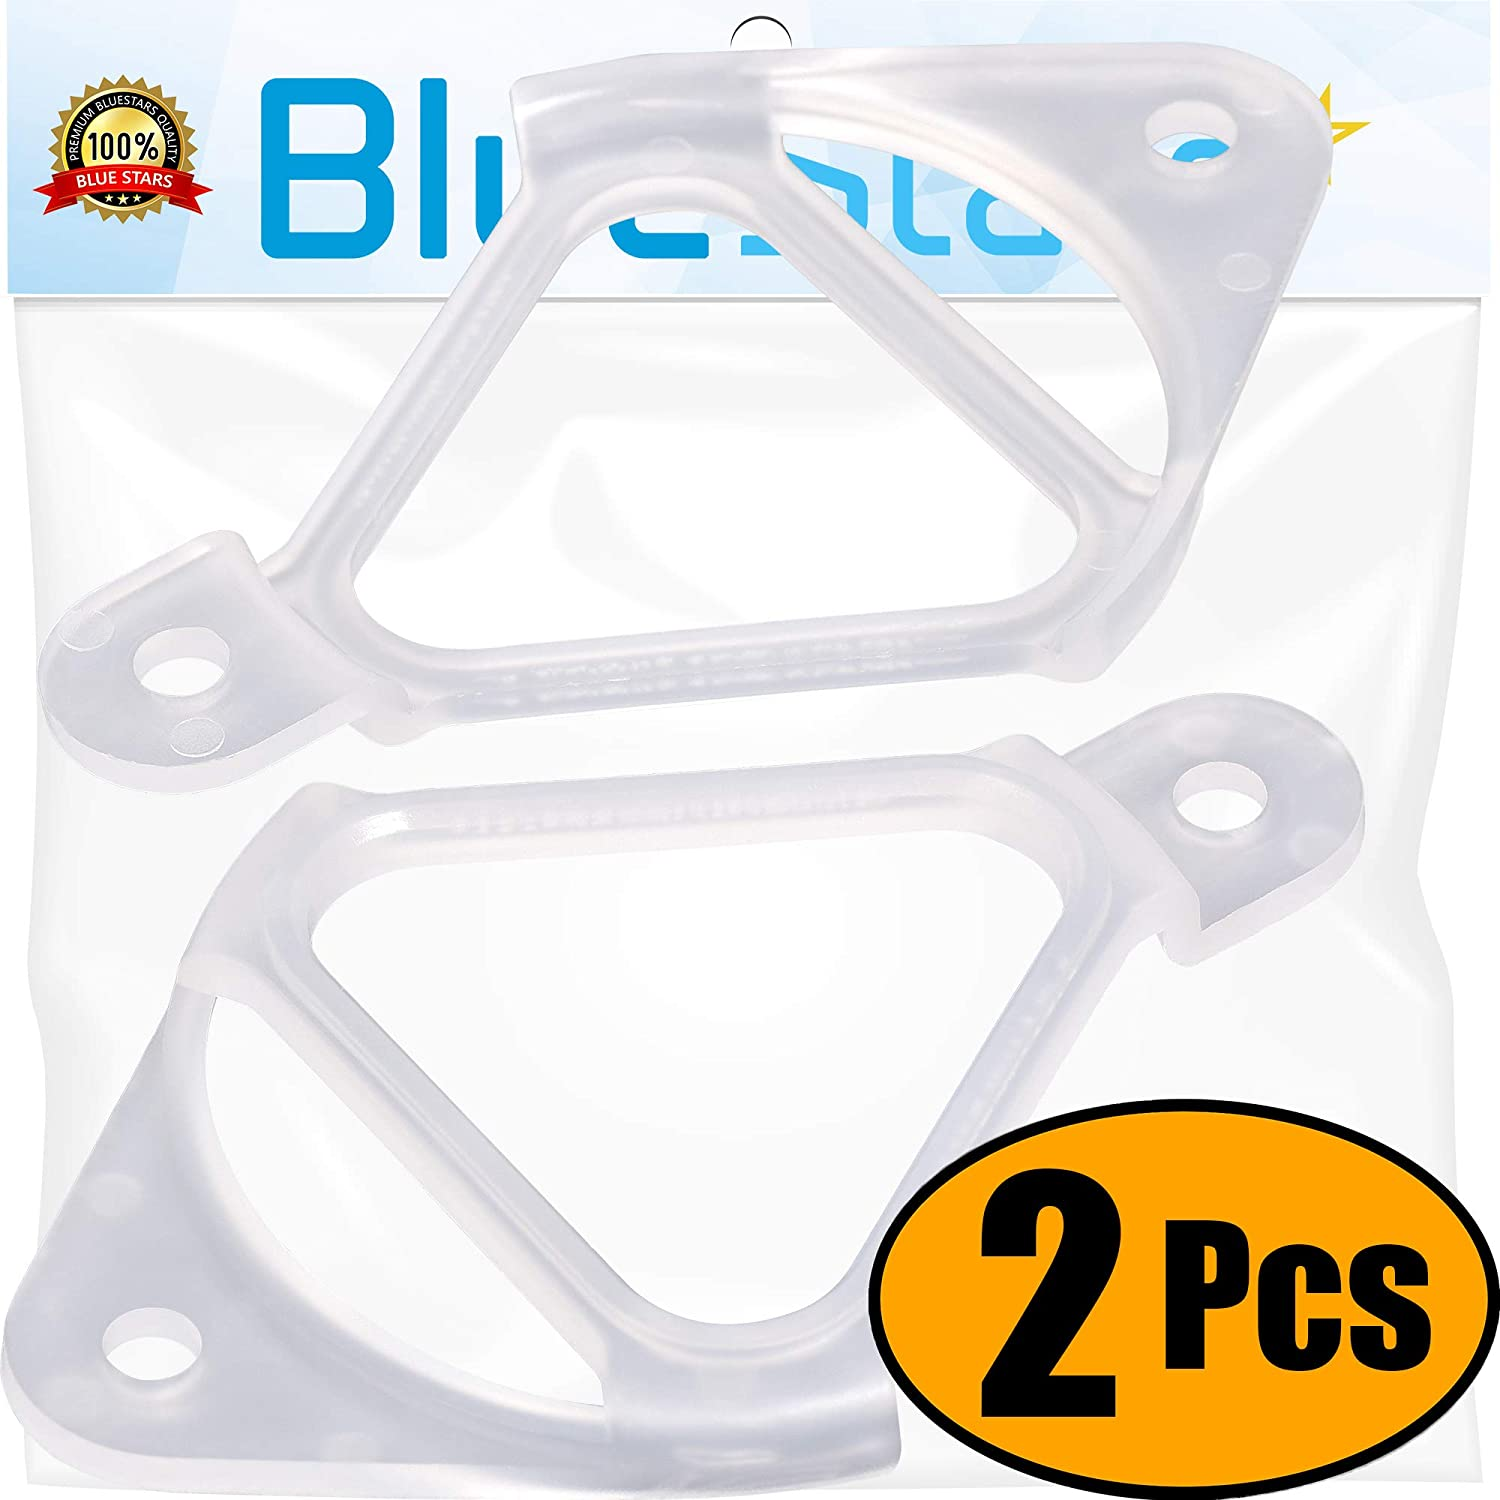 Ultra Durable WH16X513 Washer Drain Hose Clip Replacement Part by Blue Stars – Exact Fit For GE & Hotpoint Washers - Replaces AP2046140 WH16X0513 PS270508 - PACK OF 2